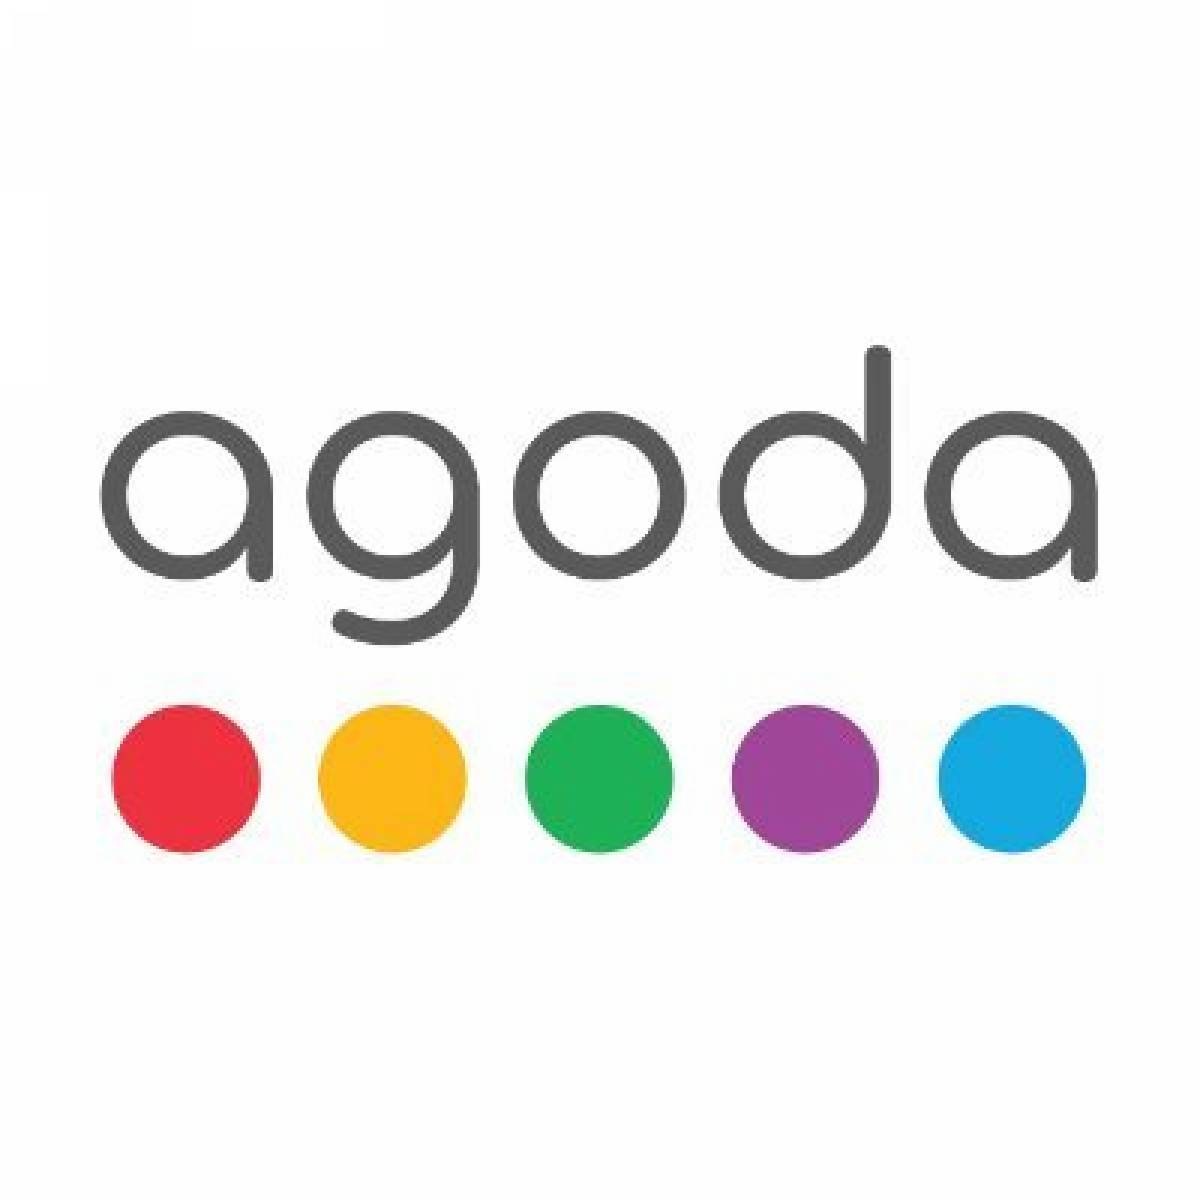 AGODA RESEARCH REVEALS TRAVEL TREND EXPECTATIONS FOR THE 2020S